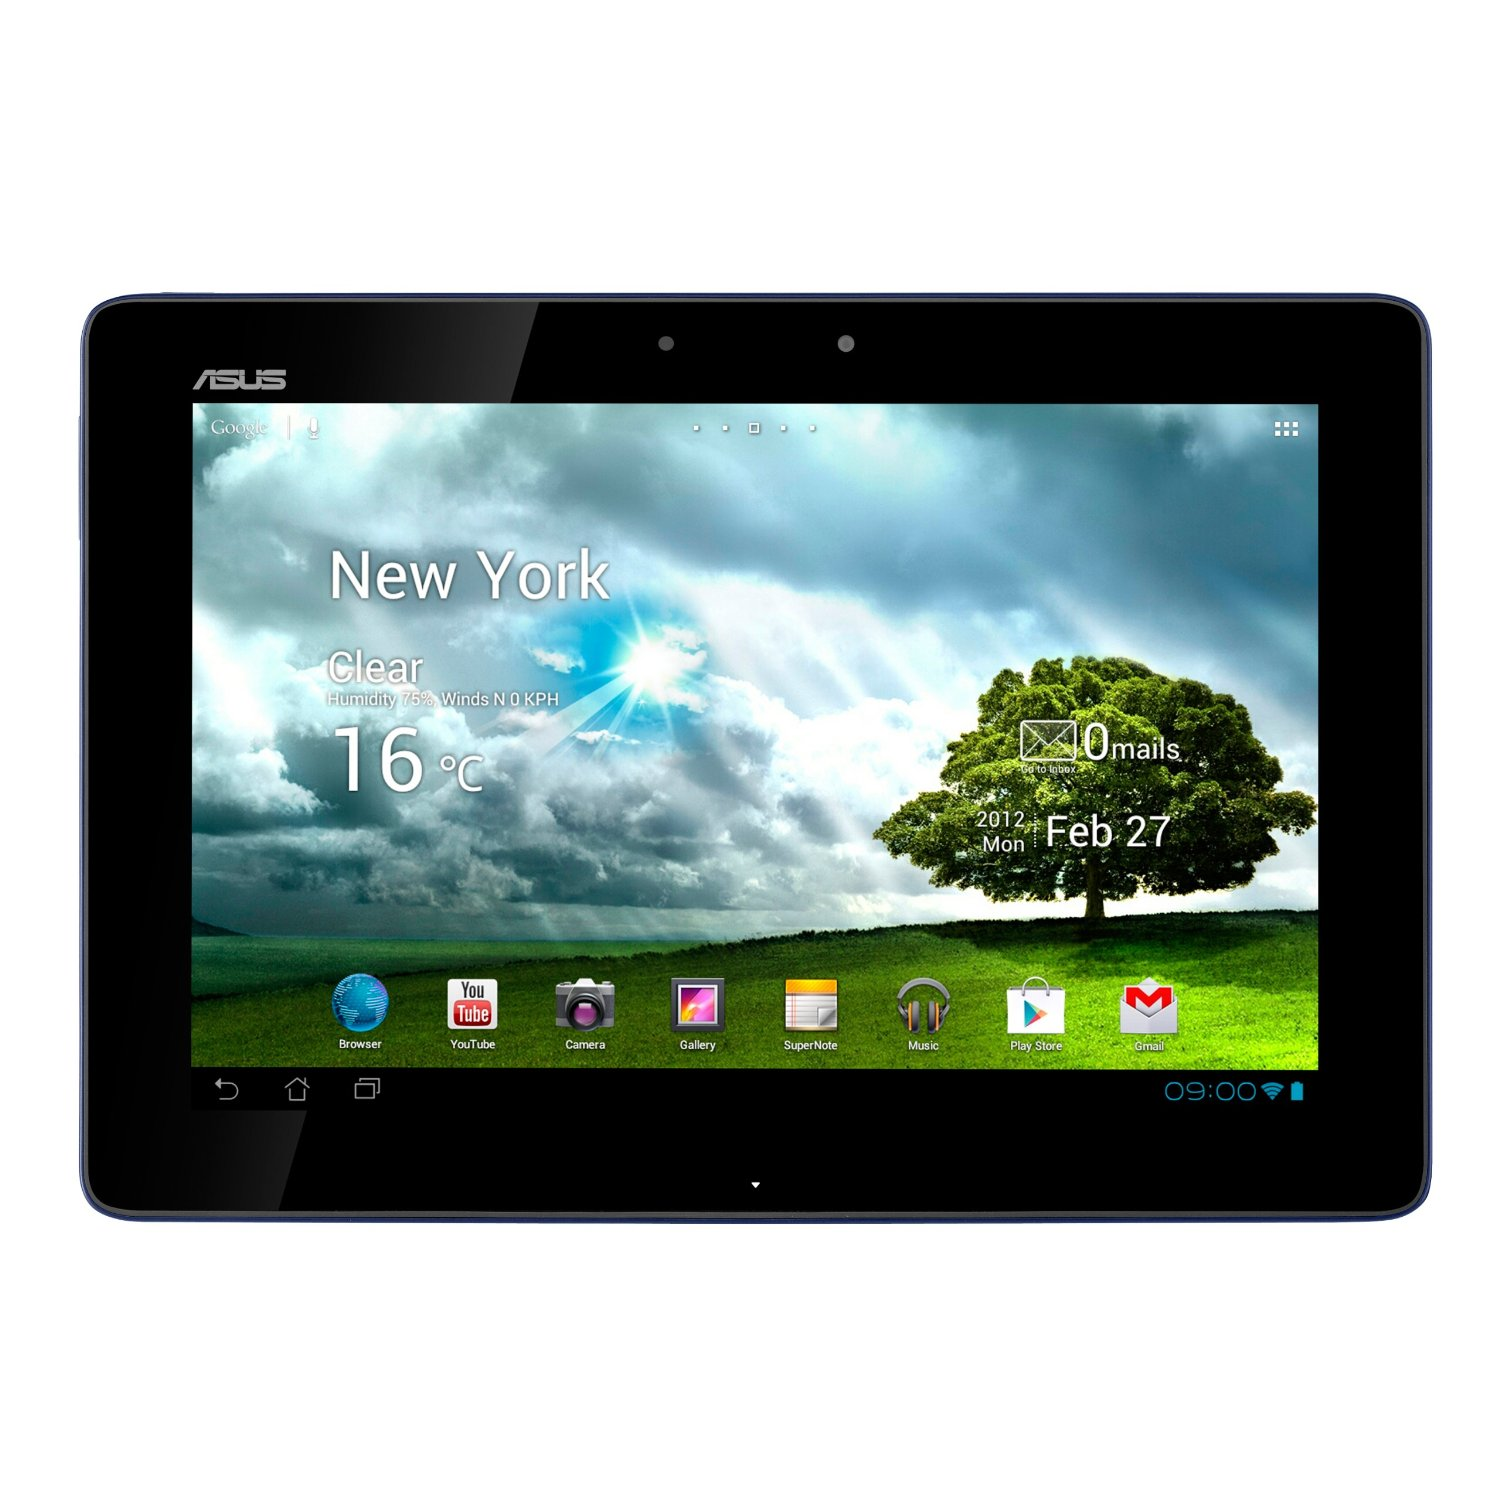 ASUS Transformer Pad TF300T seeing Jelly Bean Update